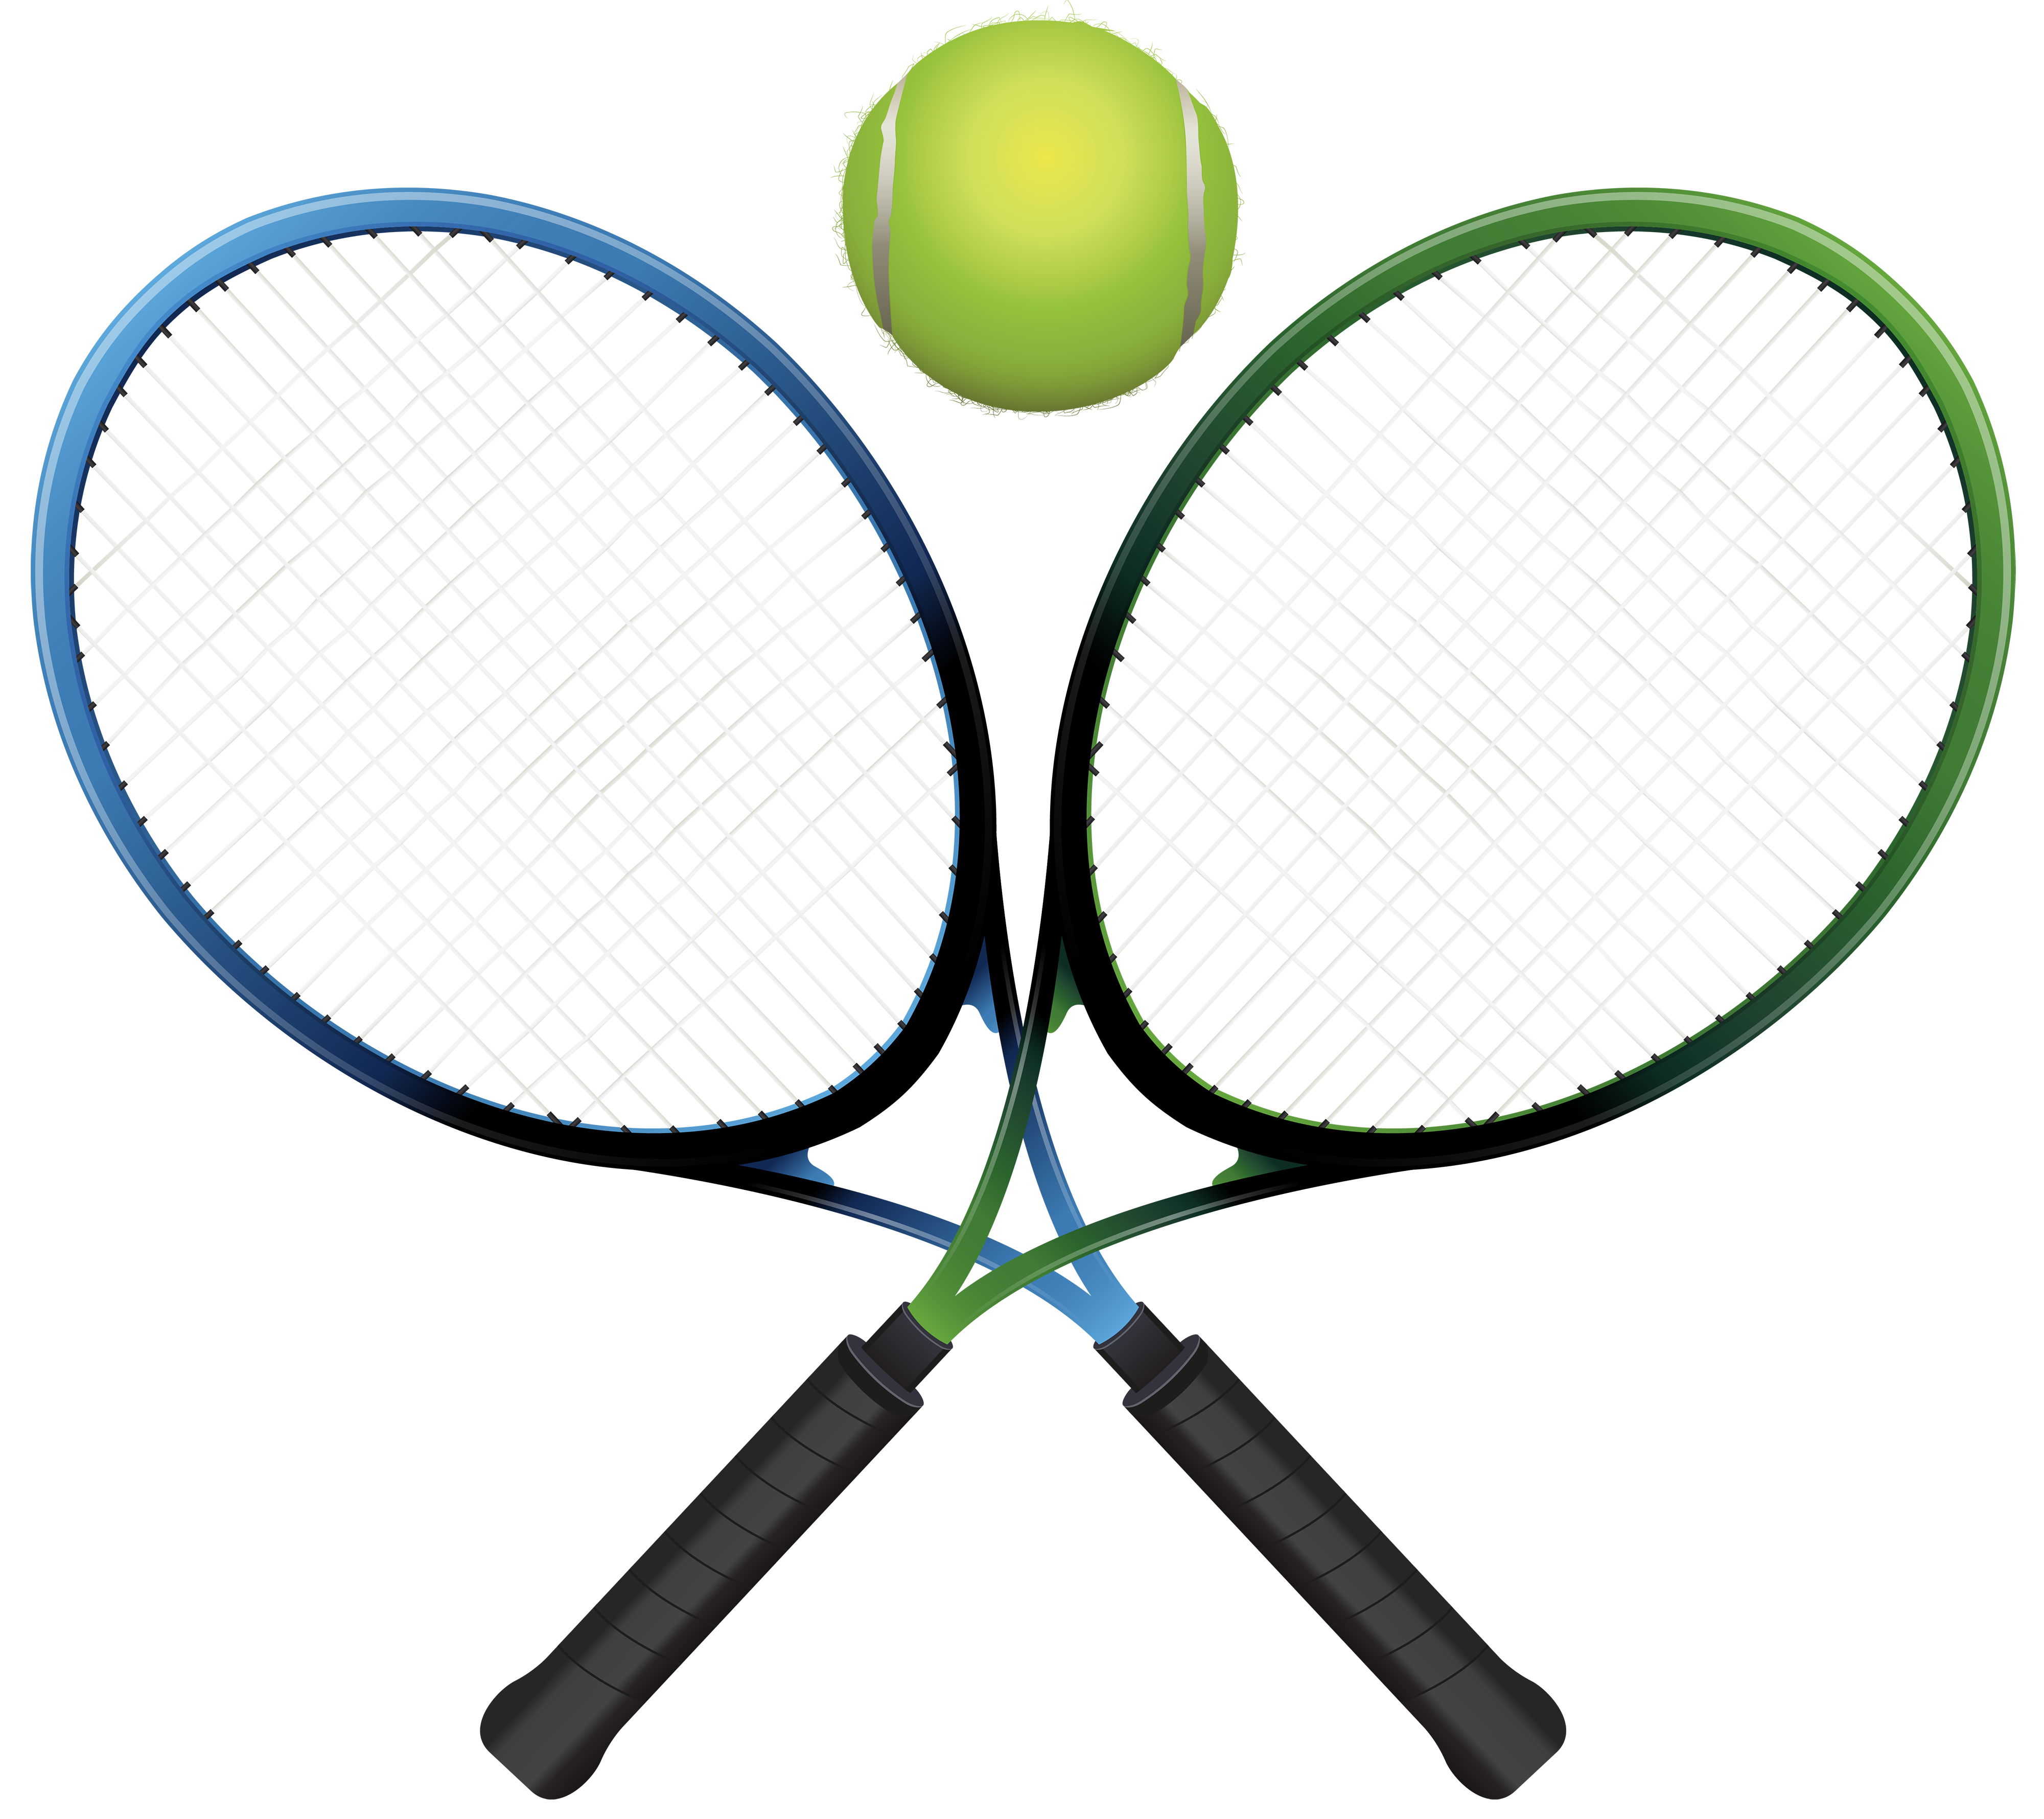 Tennis Rackets and Ball PNG Clipart.